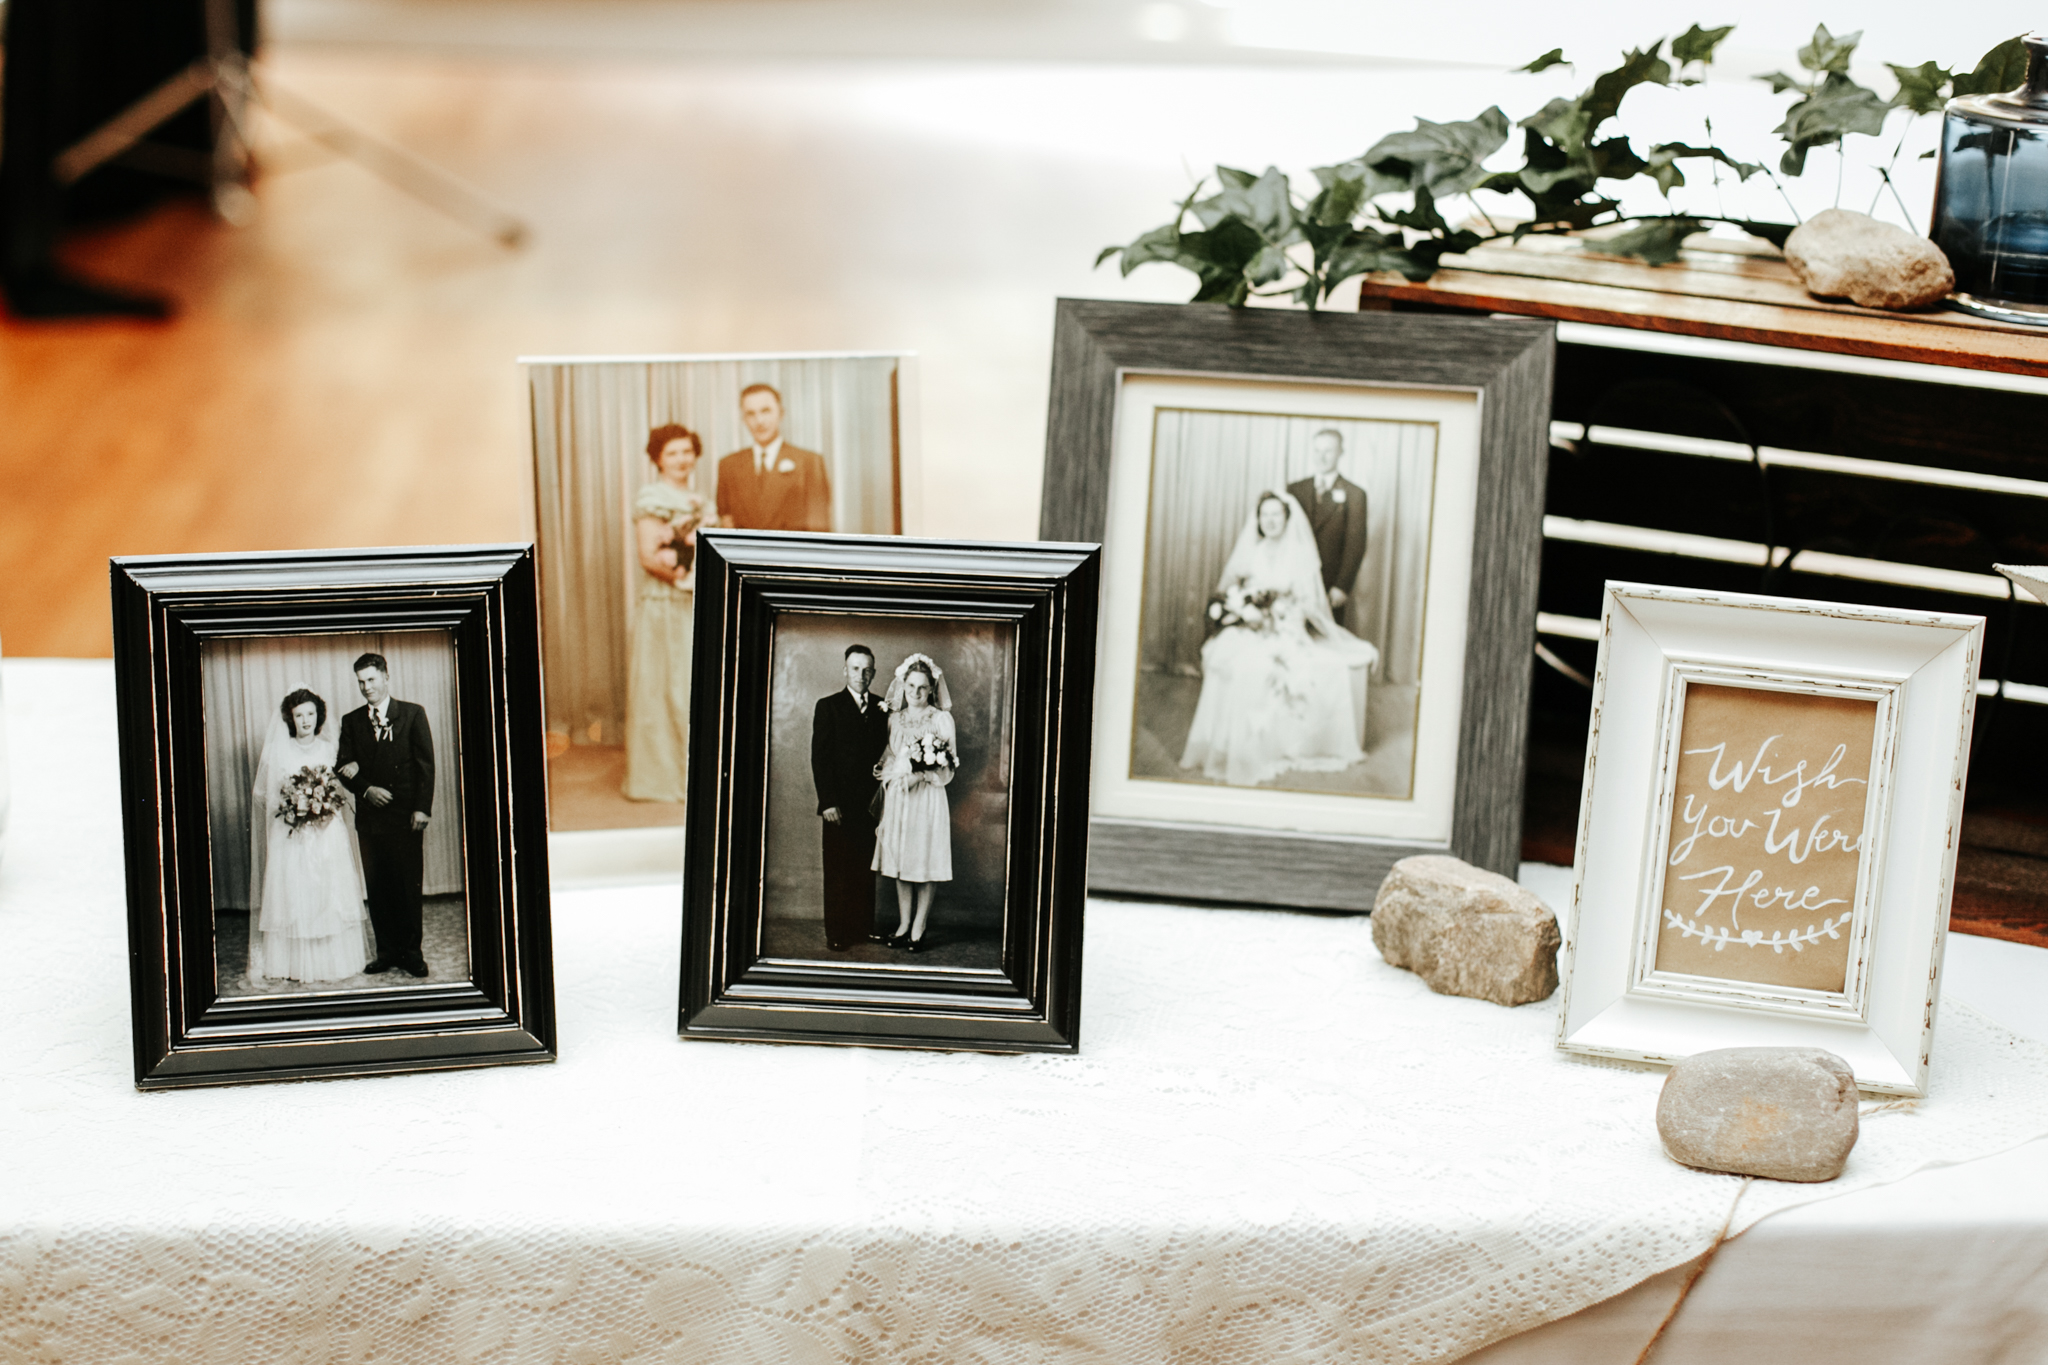 castle-mountain-wedding-photographer-love-and-be-loved-photography-lethbridge-pincher-creek-crowsnest-pass-yannick-rylee-photo-image-picture-155170-2.jpg